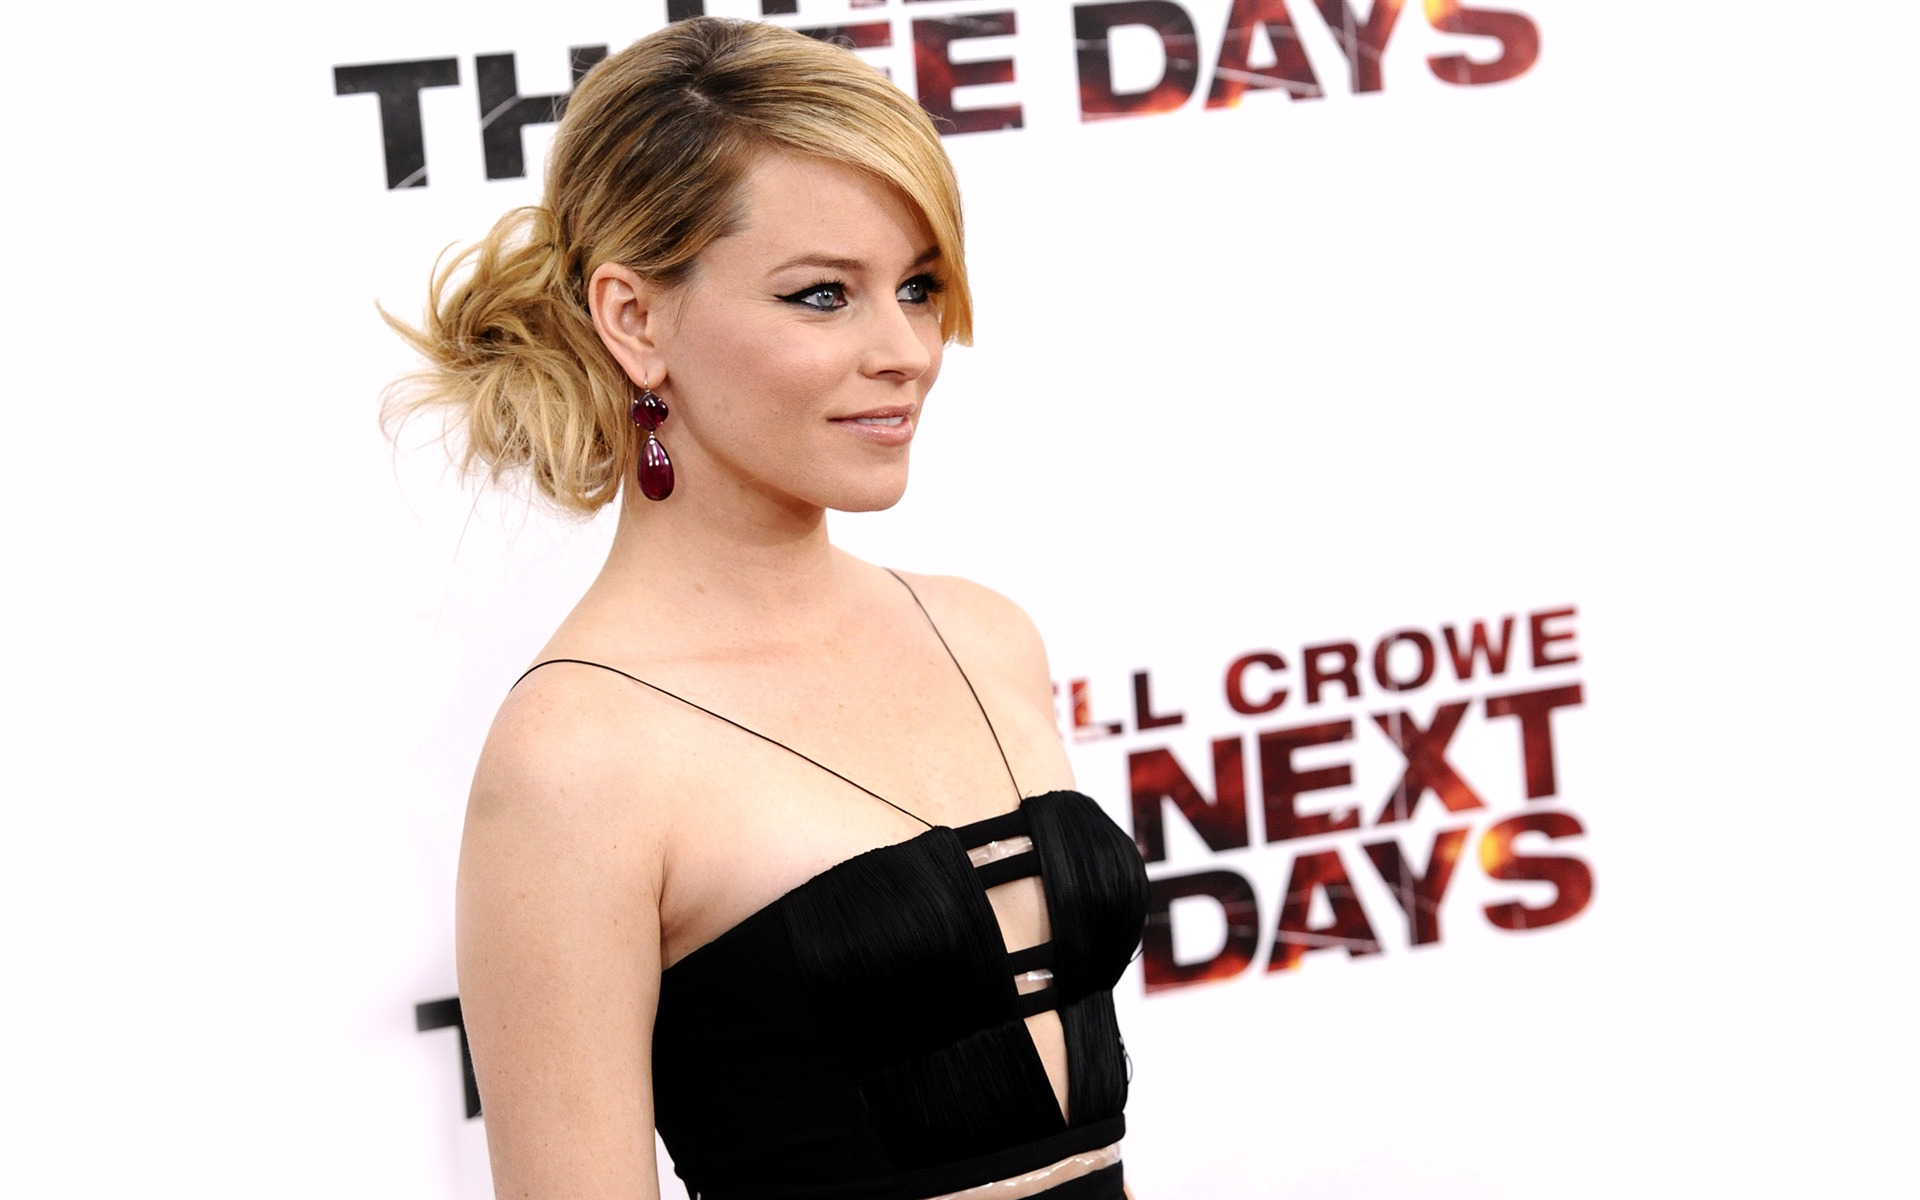 Elizabeth Banks #002 - 1920x1200 Wallpapers Pictures Photos Images